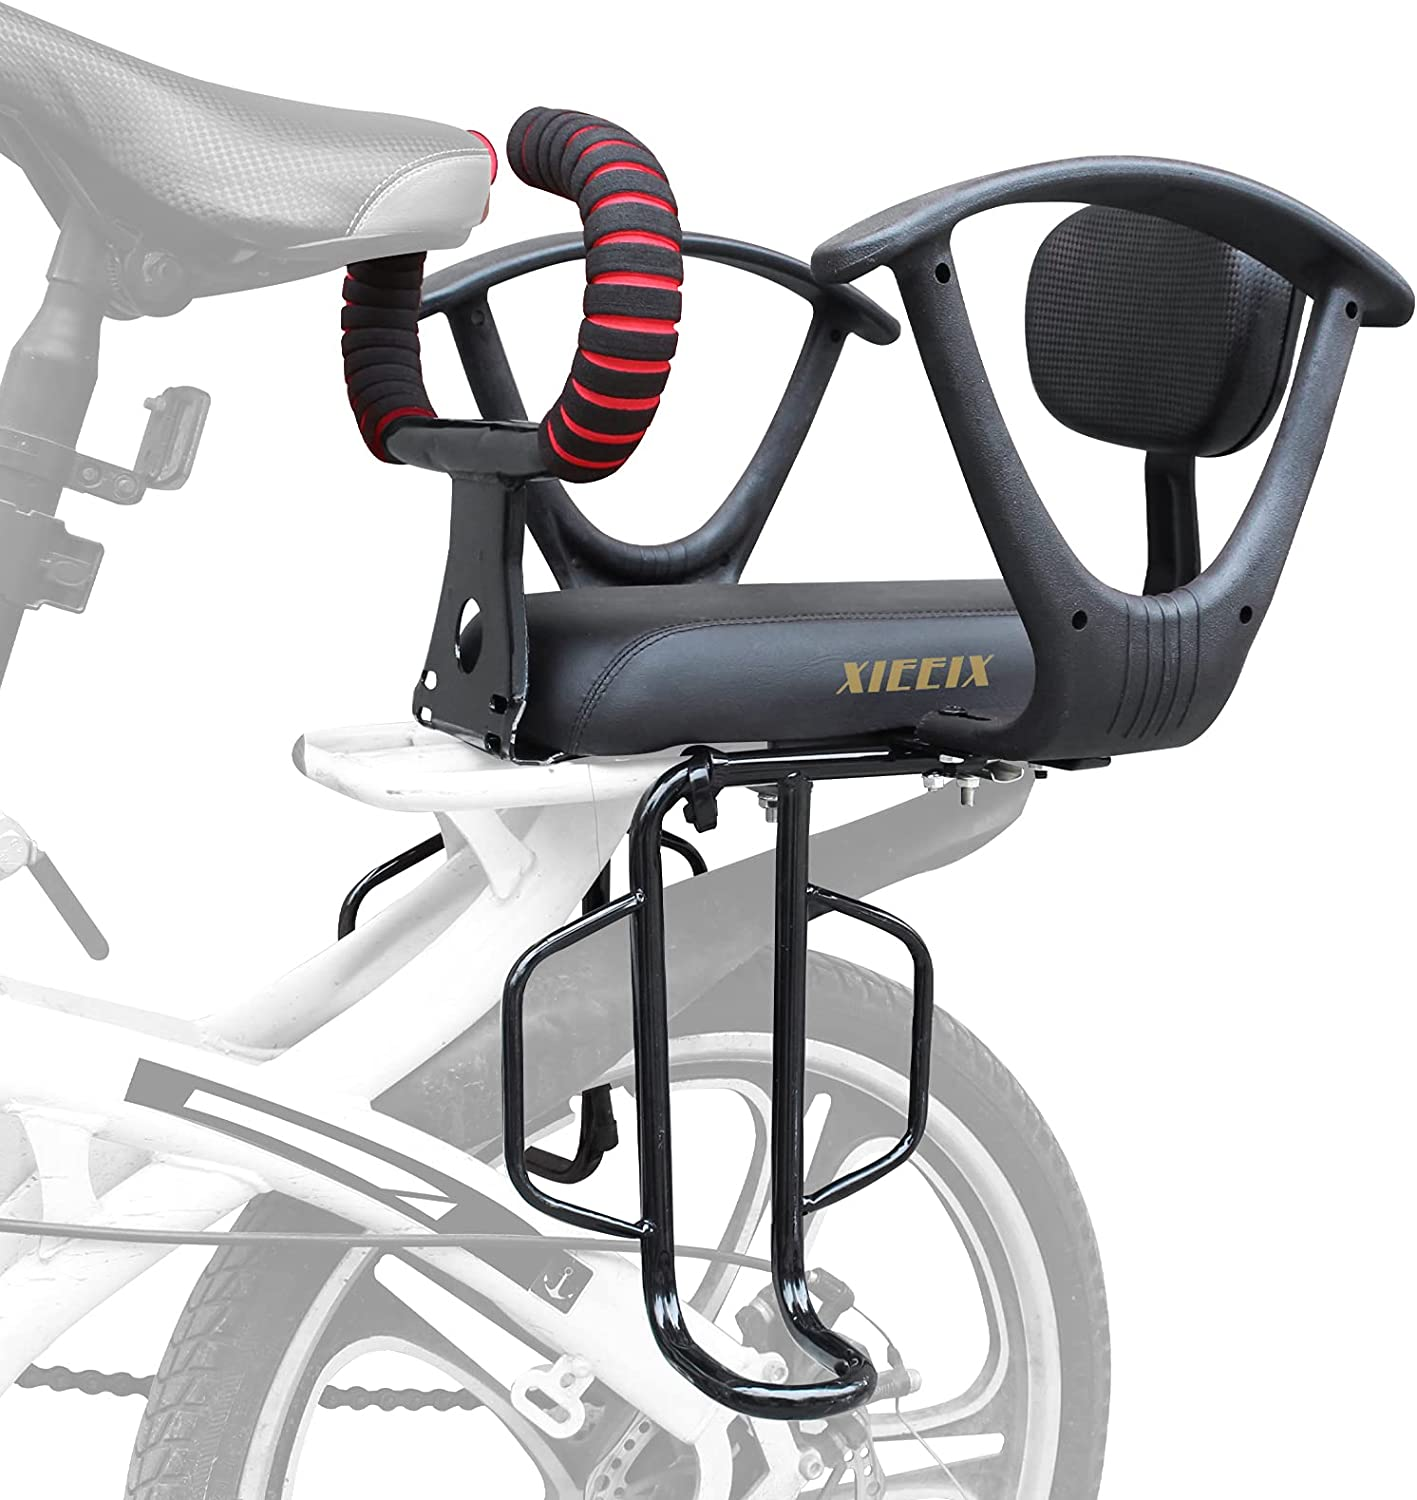 XIEEIX Child Rear Child Bike Seat, Back Mounted Kids Carrier Bicycle Seat Including Footrest, Thicken Armrest,Cushion and Backrest Adjustable and Detachable Bike Seat